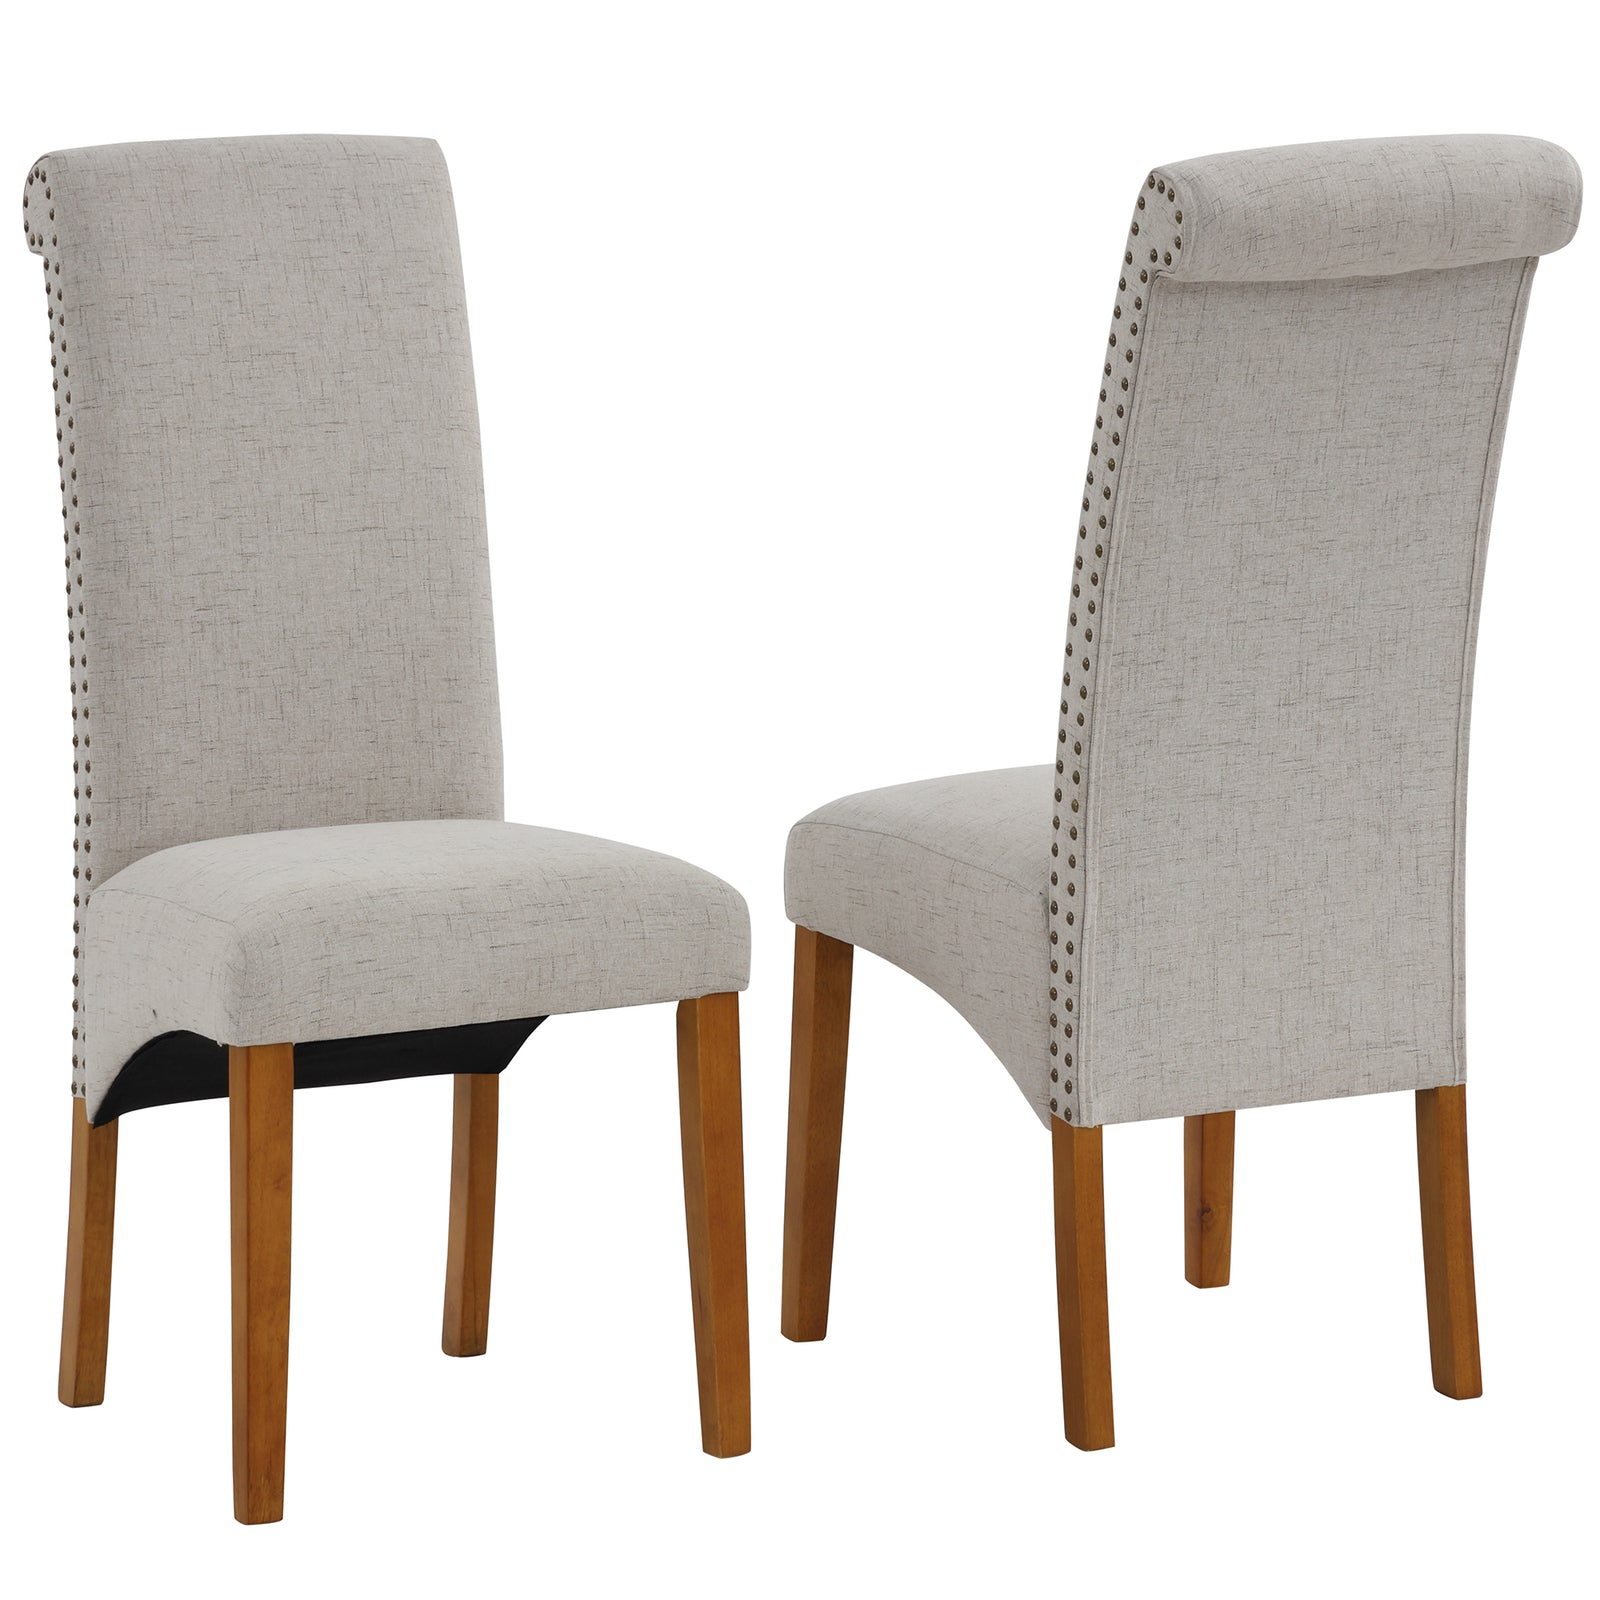 Dark Gray Dining Chair Set Fabric Padded Side Chair with Solid Wood Legs Nailed Trim Living Room BH486200